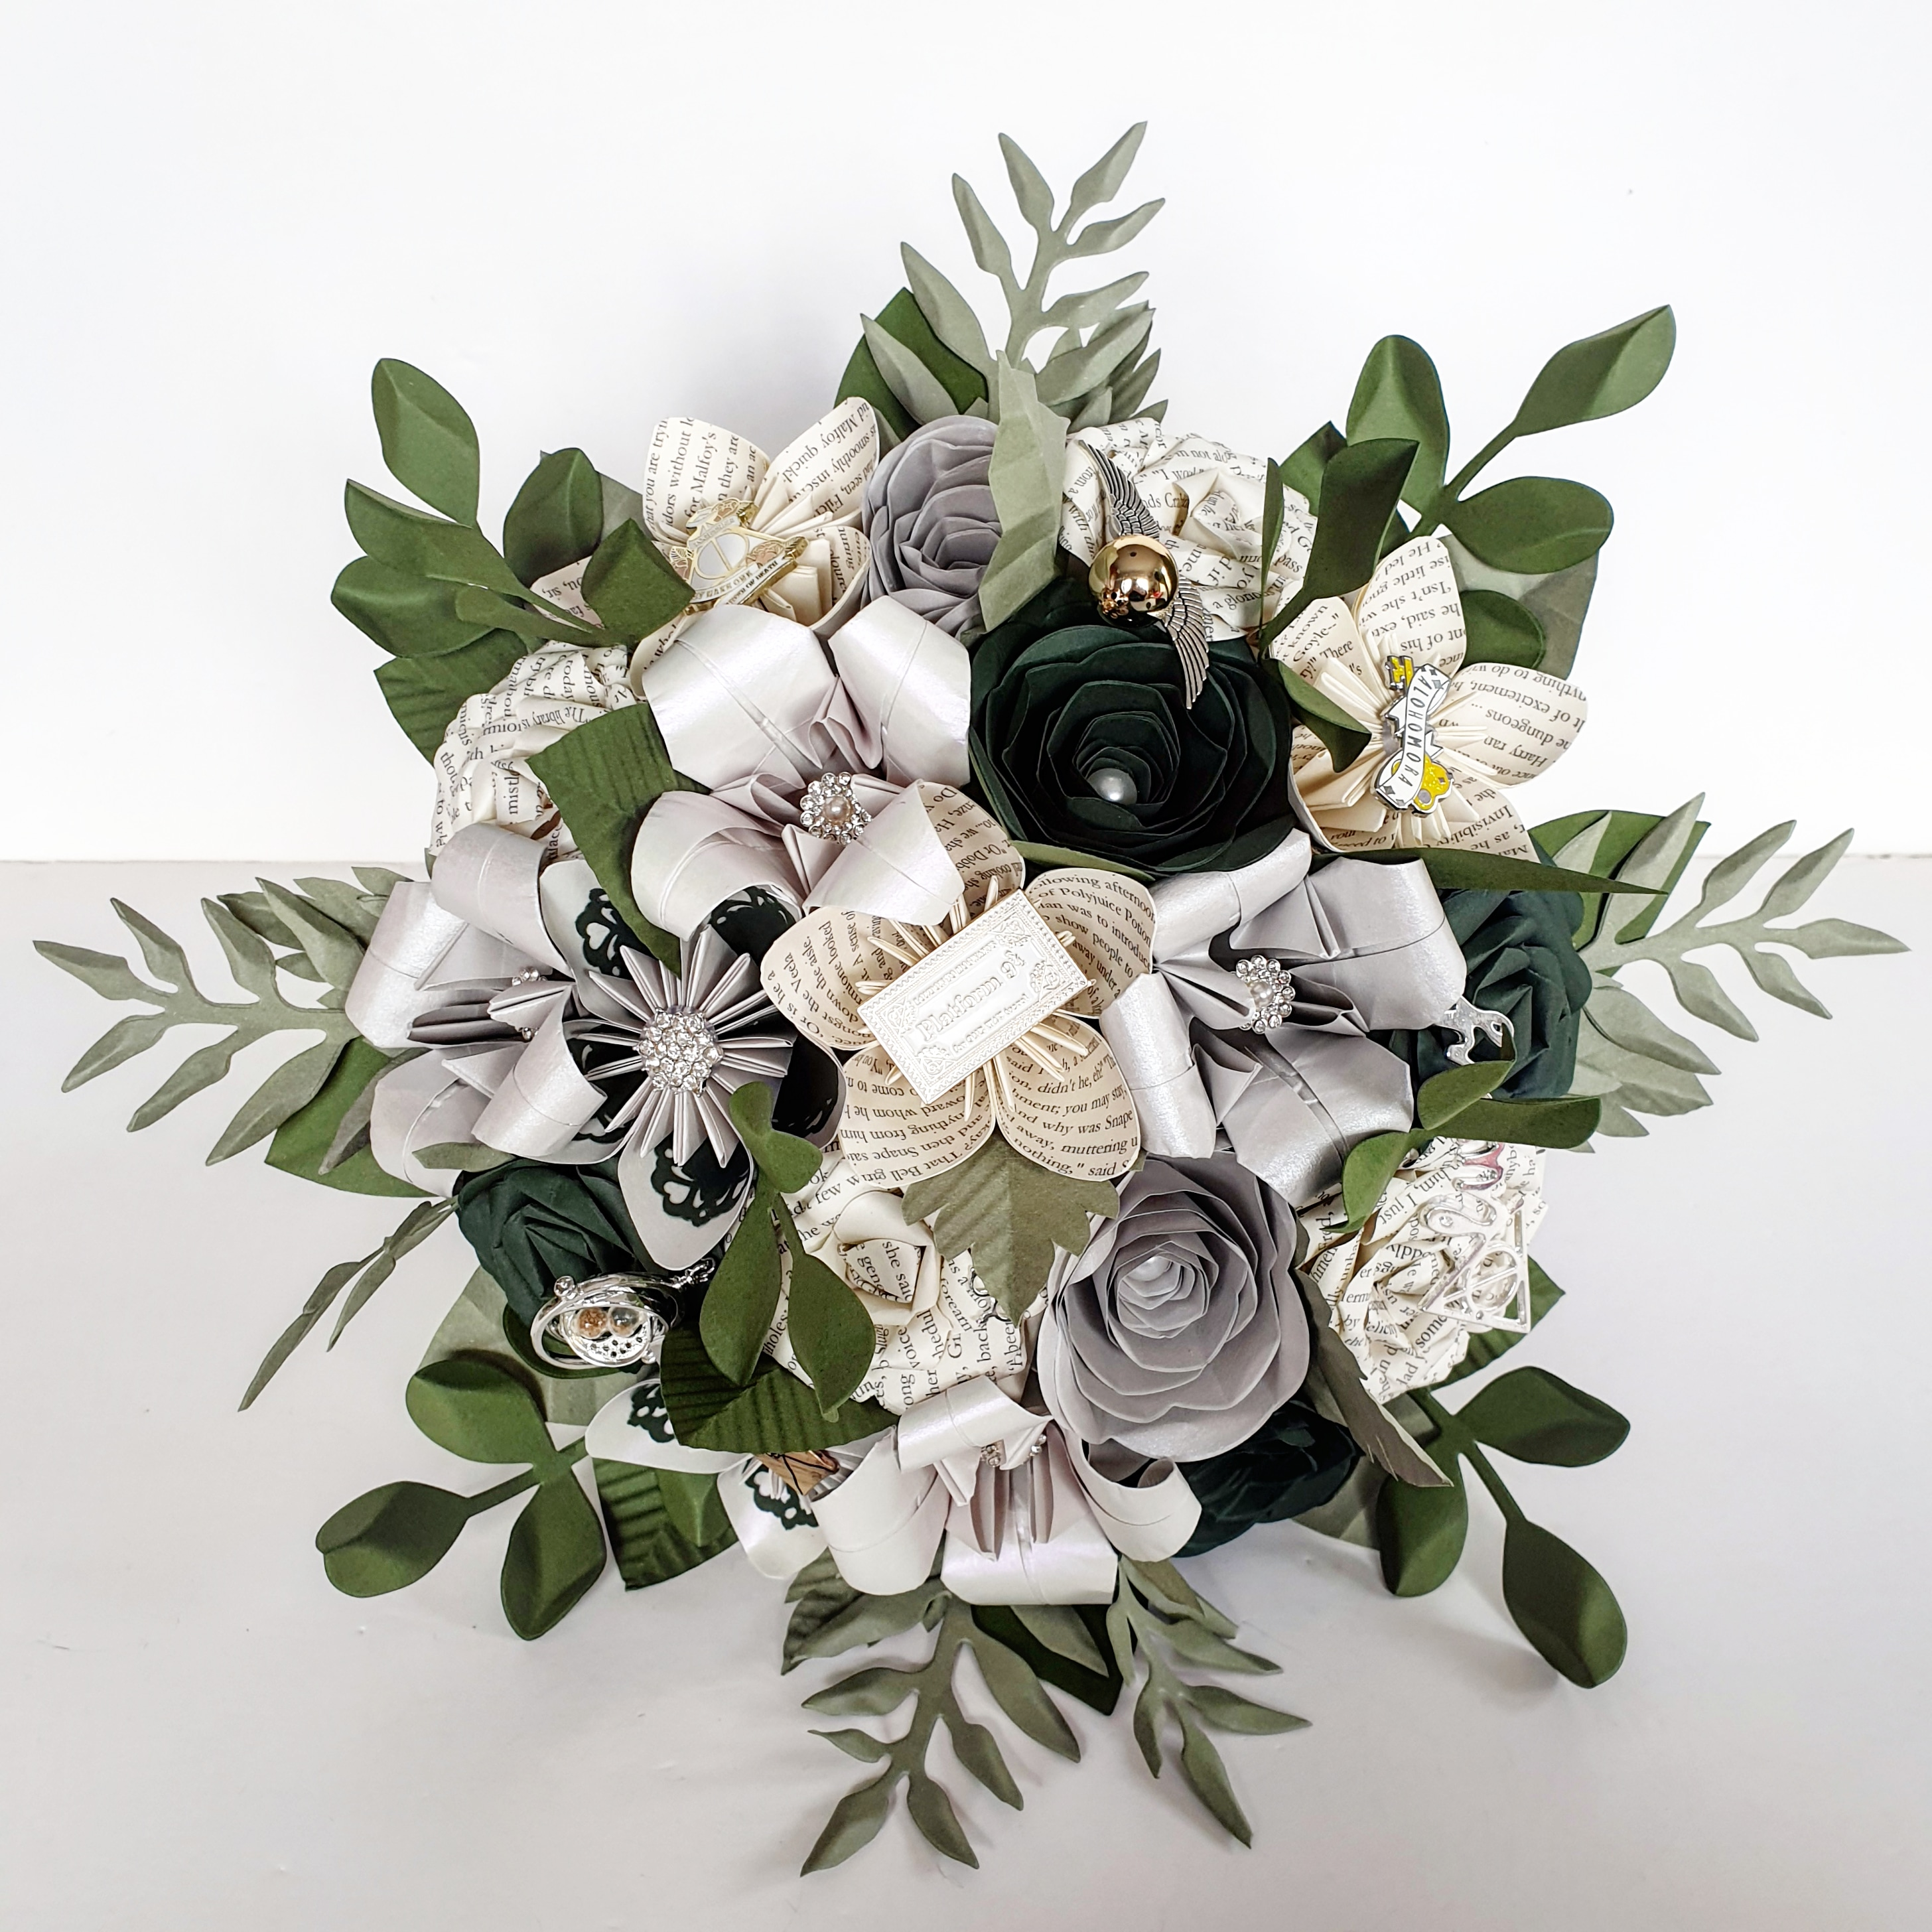 Harry Potter slytherine wedding theme bridal flowers bouquet ideas